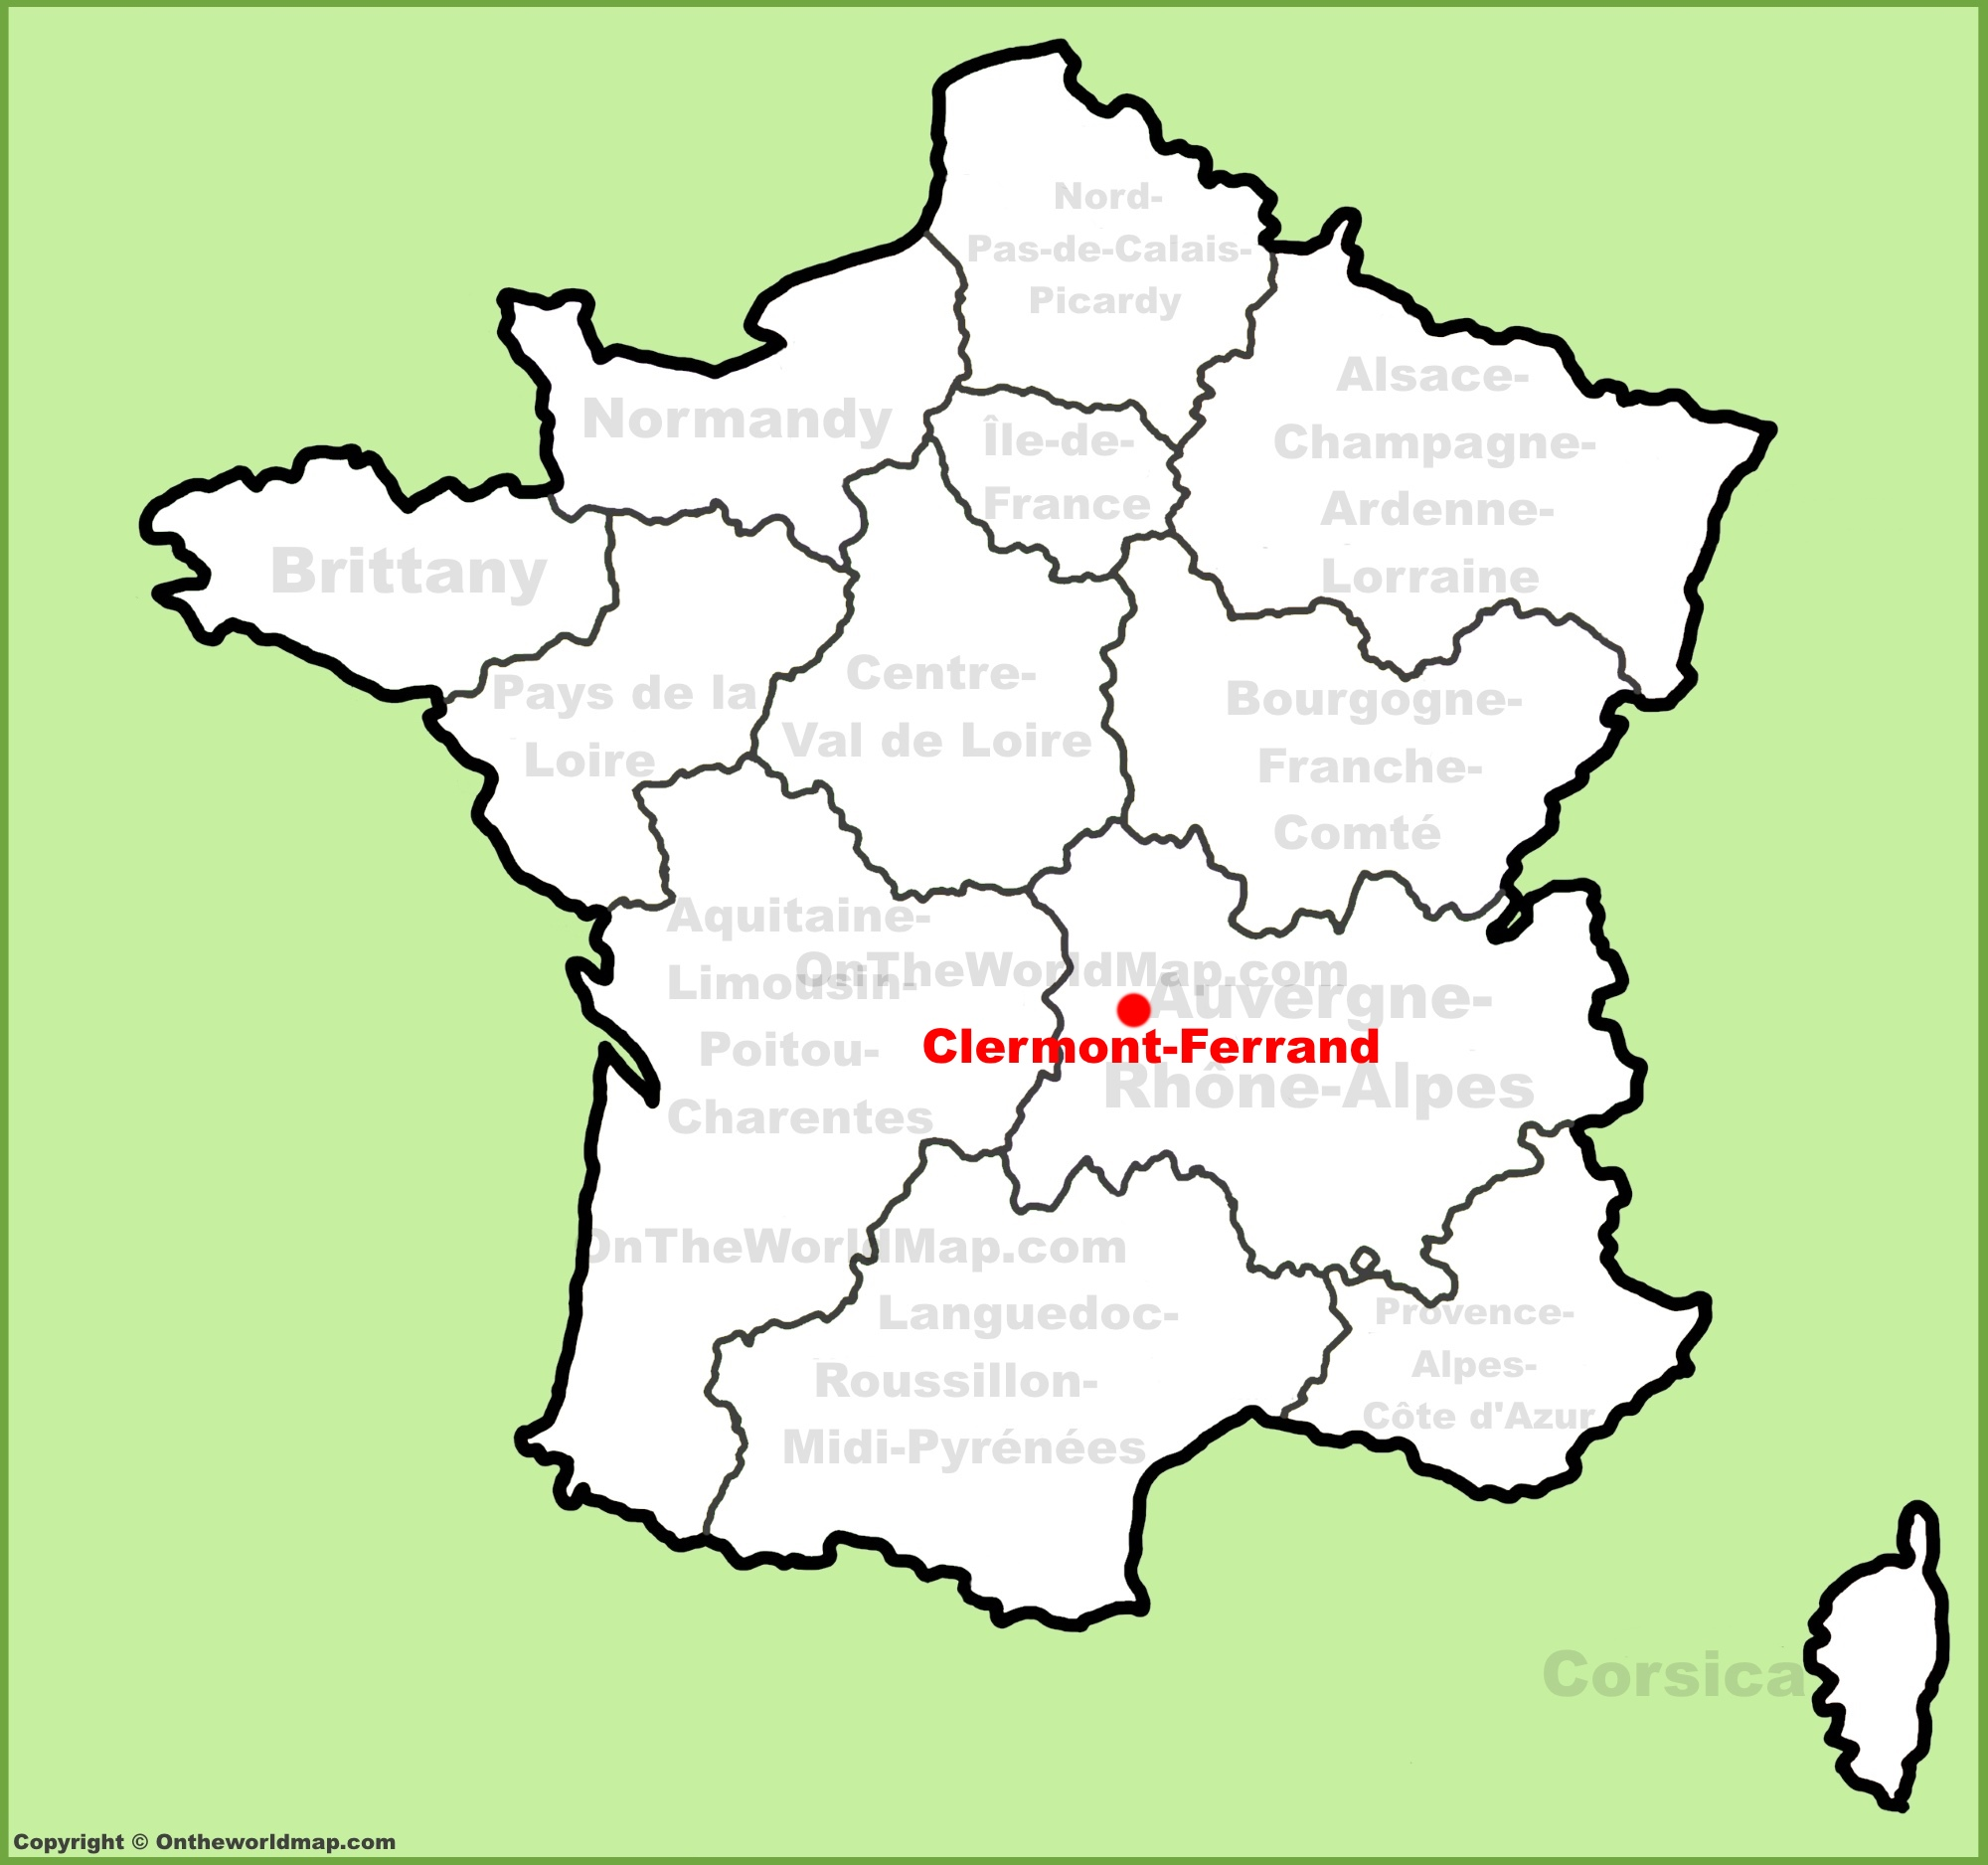 Clermont Ferrand location on the France map